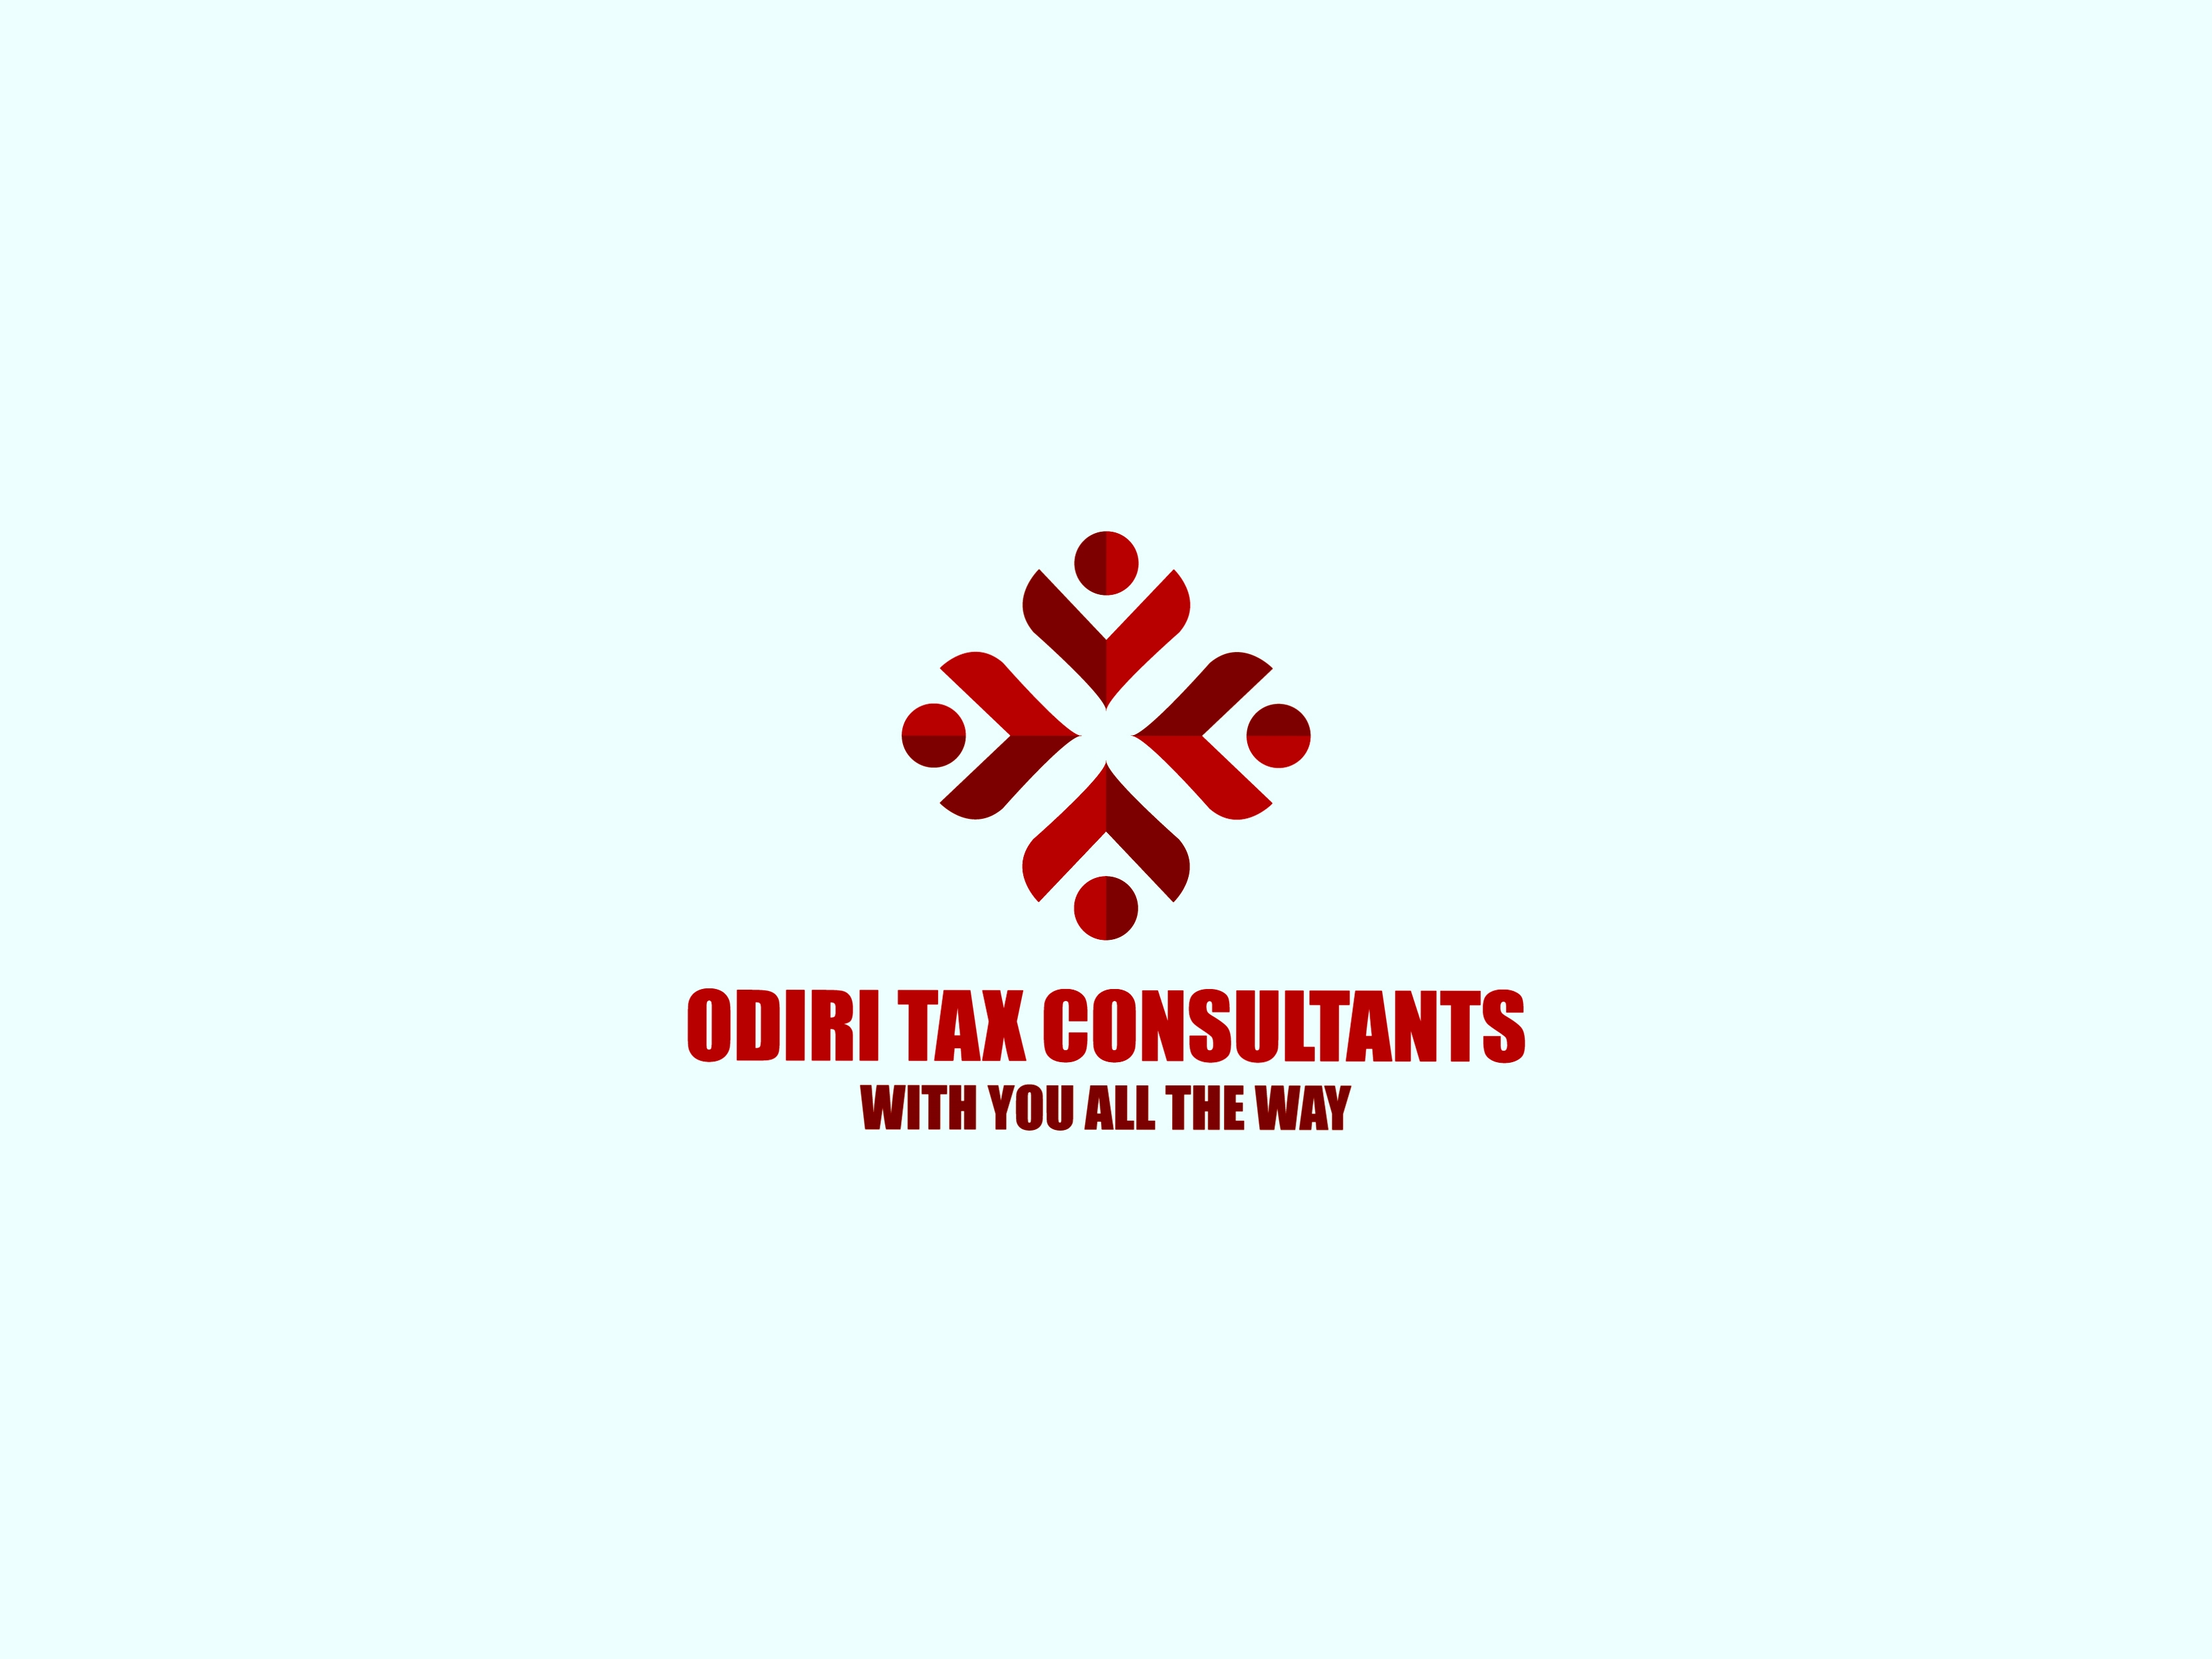 Odiri Tax Consultants & Accountants